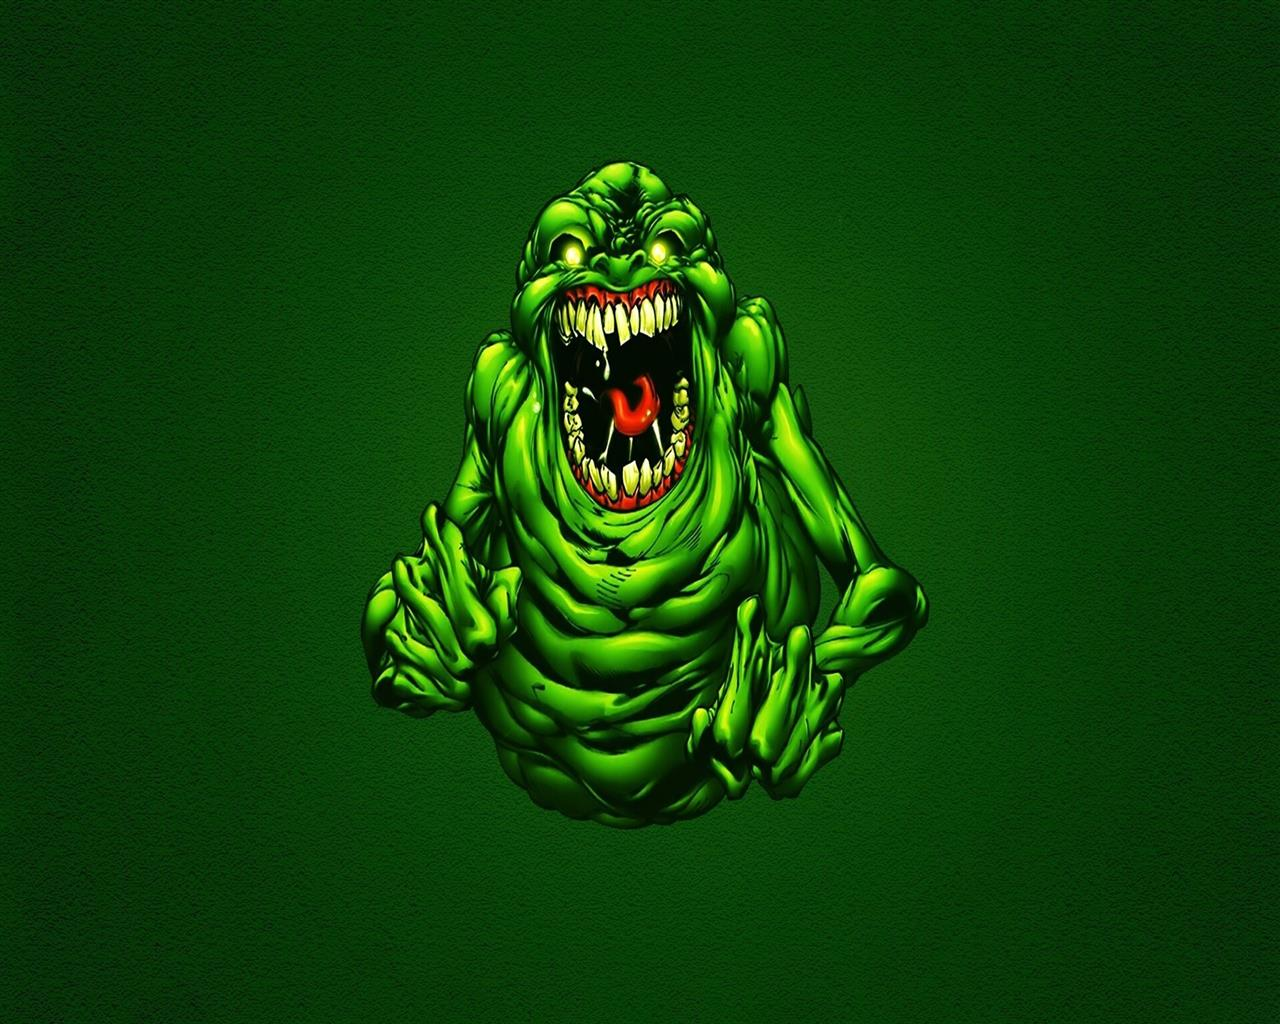 1280x1024 Funny Green Ghostbusters Slimer Wallpapers